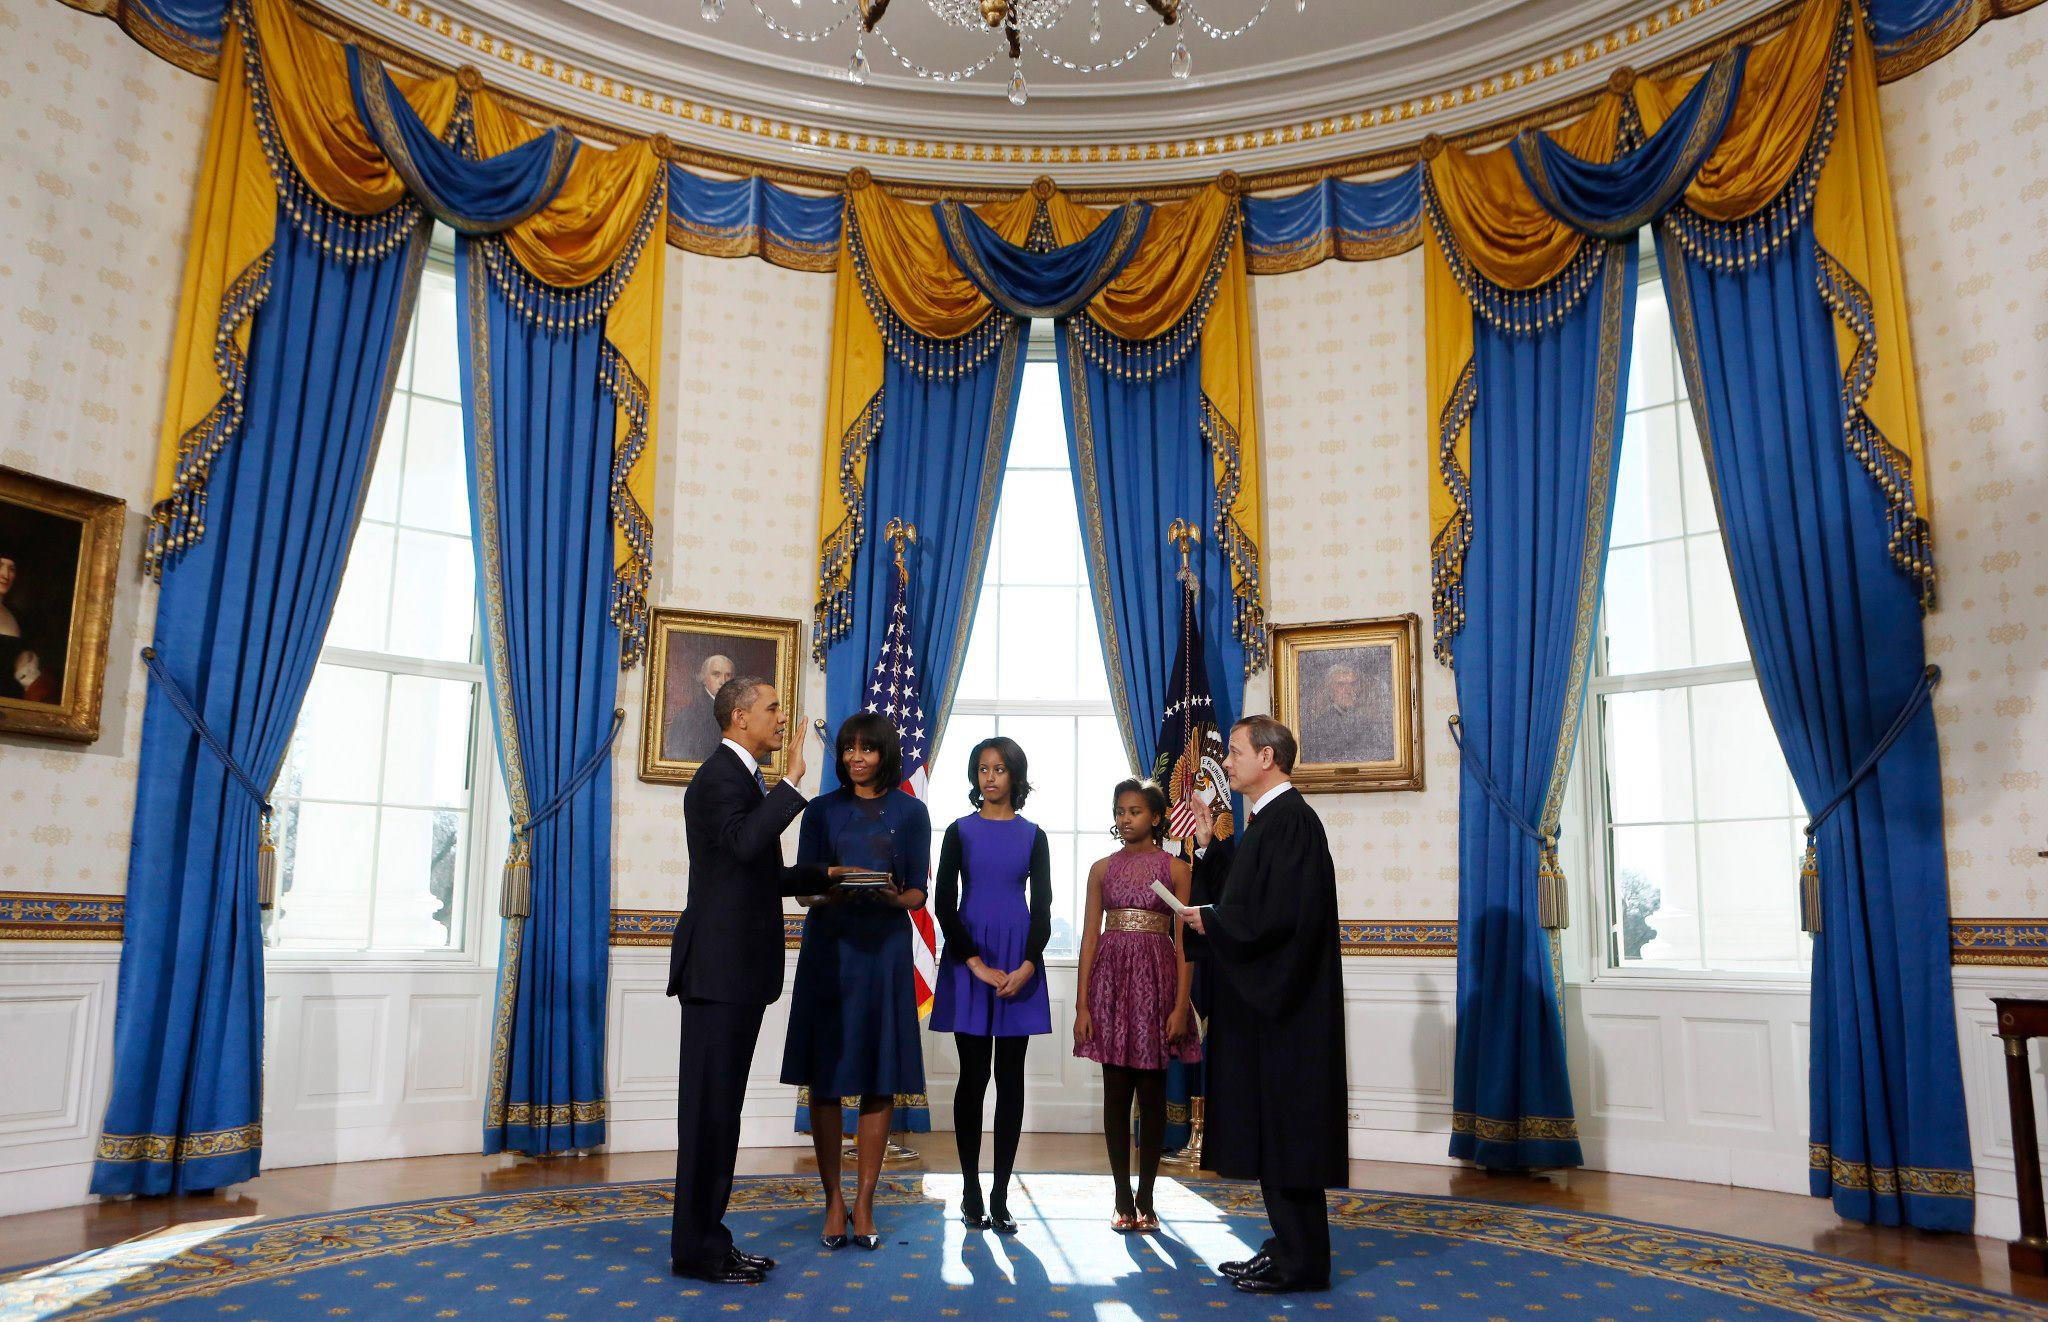 us president office. President Obama Takes The Oath Of Office For His Second Term, January 20, 2013 Us L